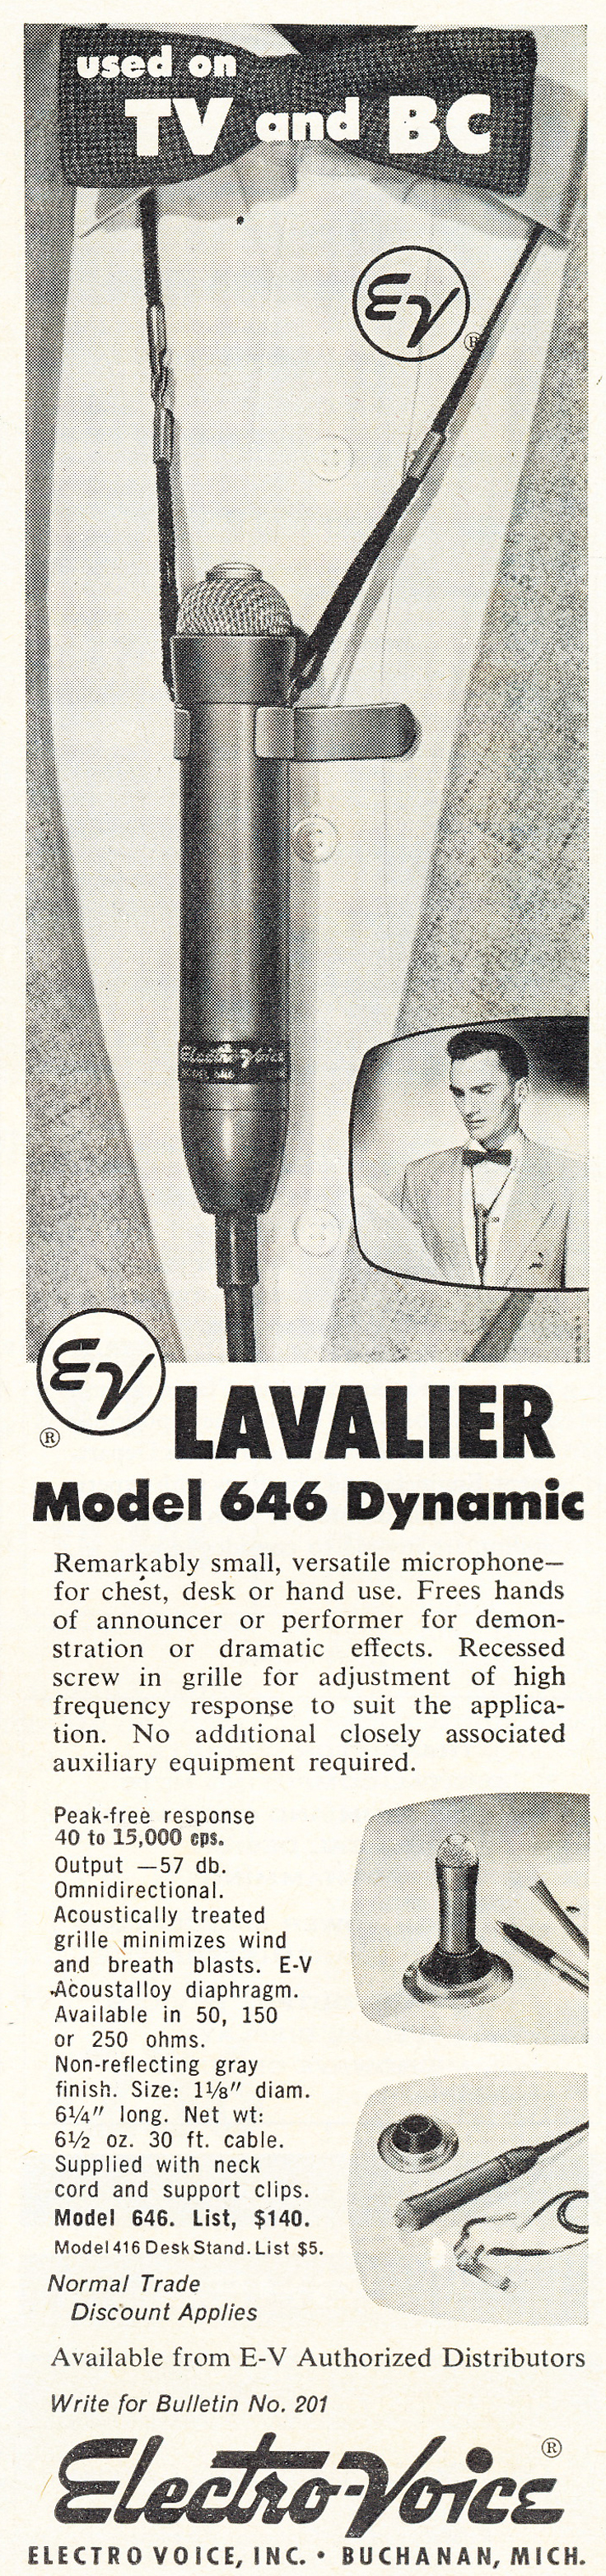 1955 ad for the Electro Voice 646 microphone in Phantom Productions' vintage tape recording collection